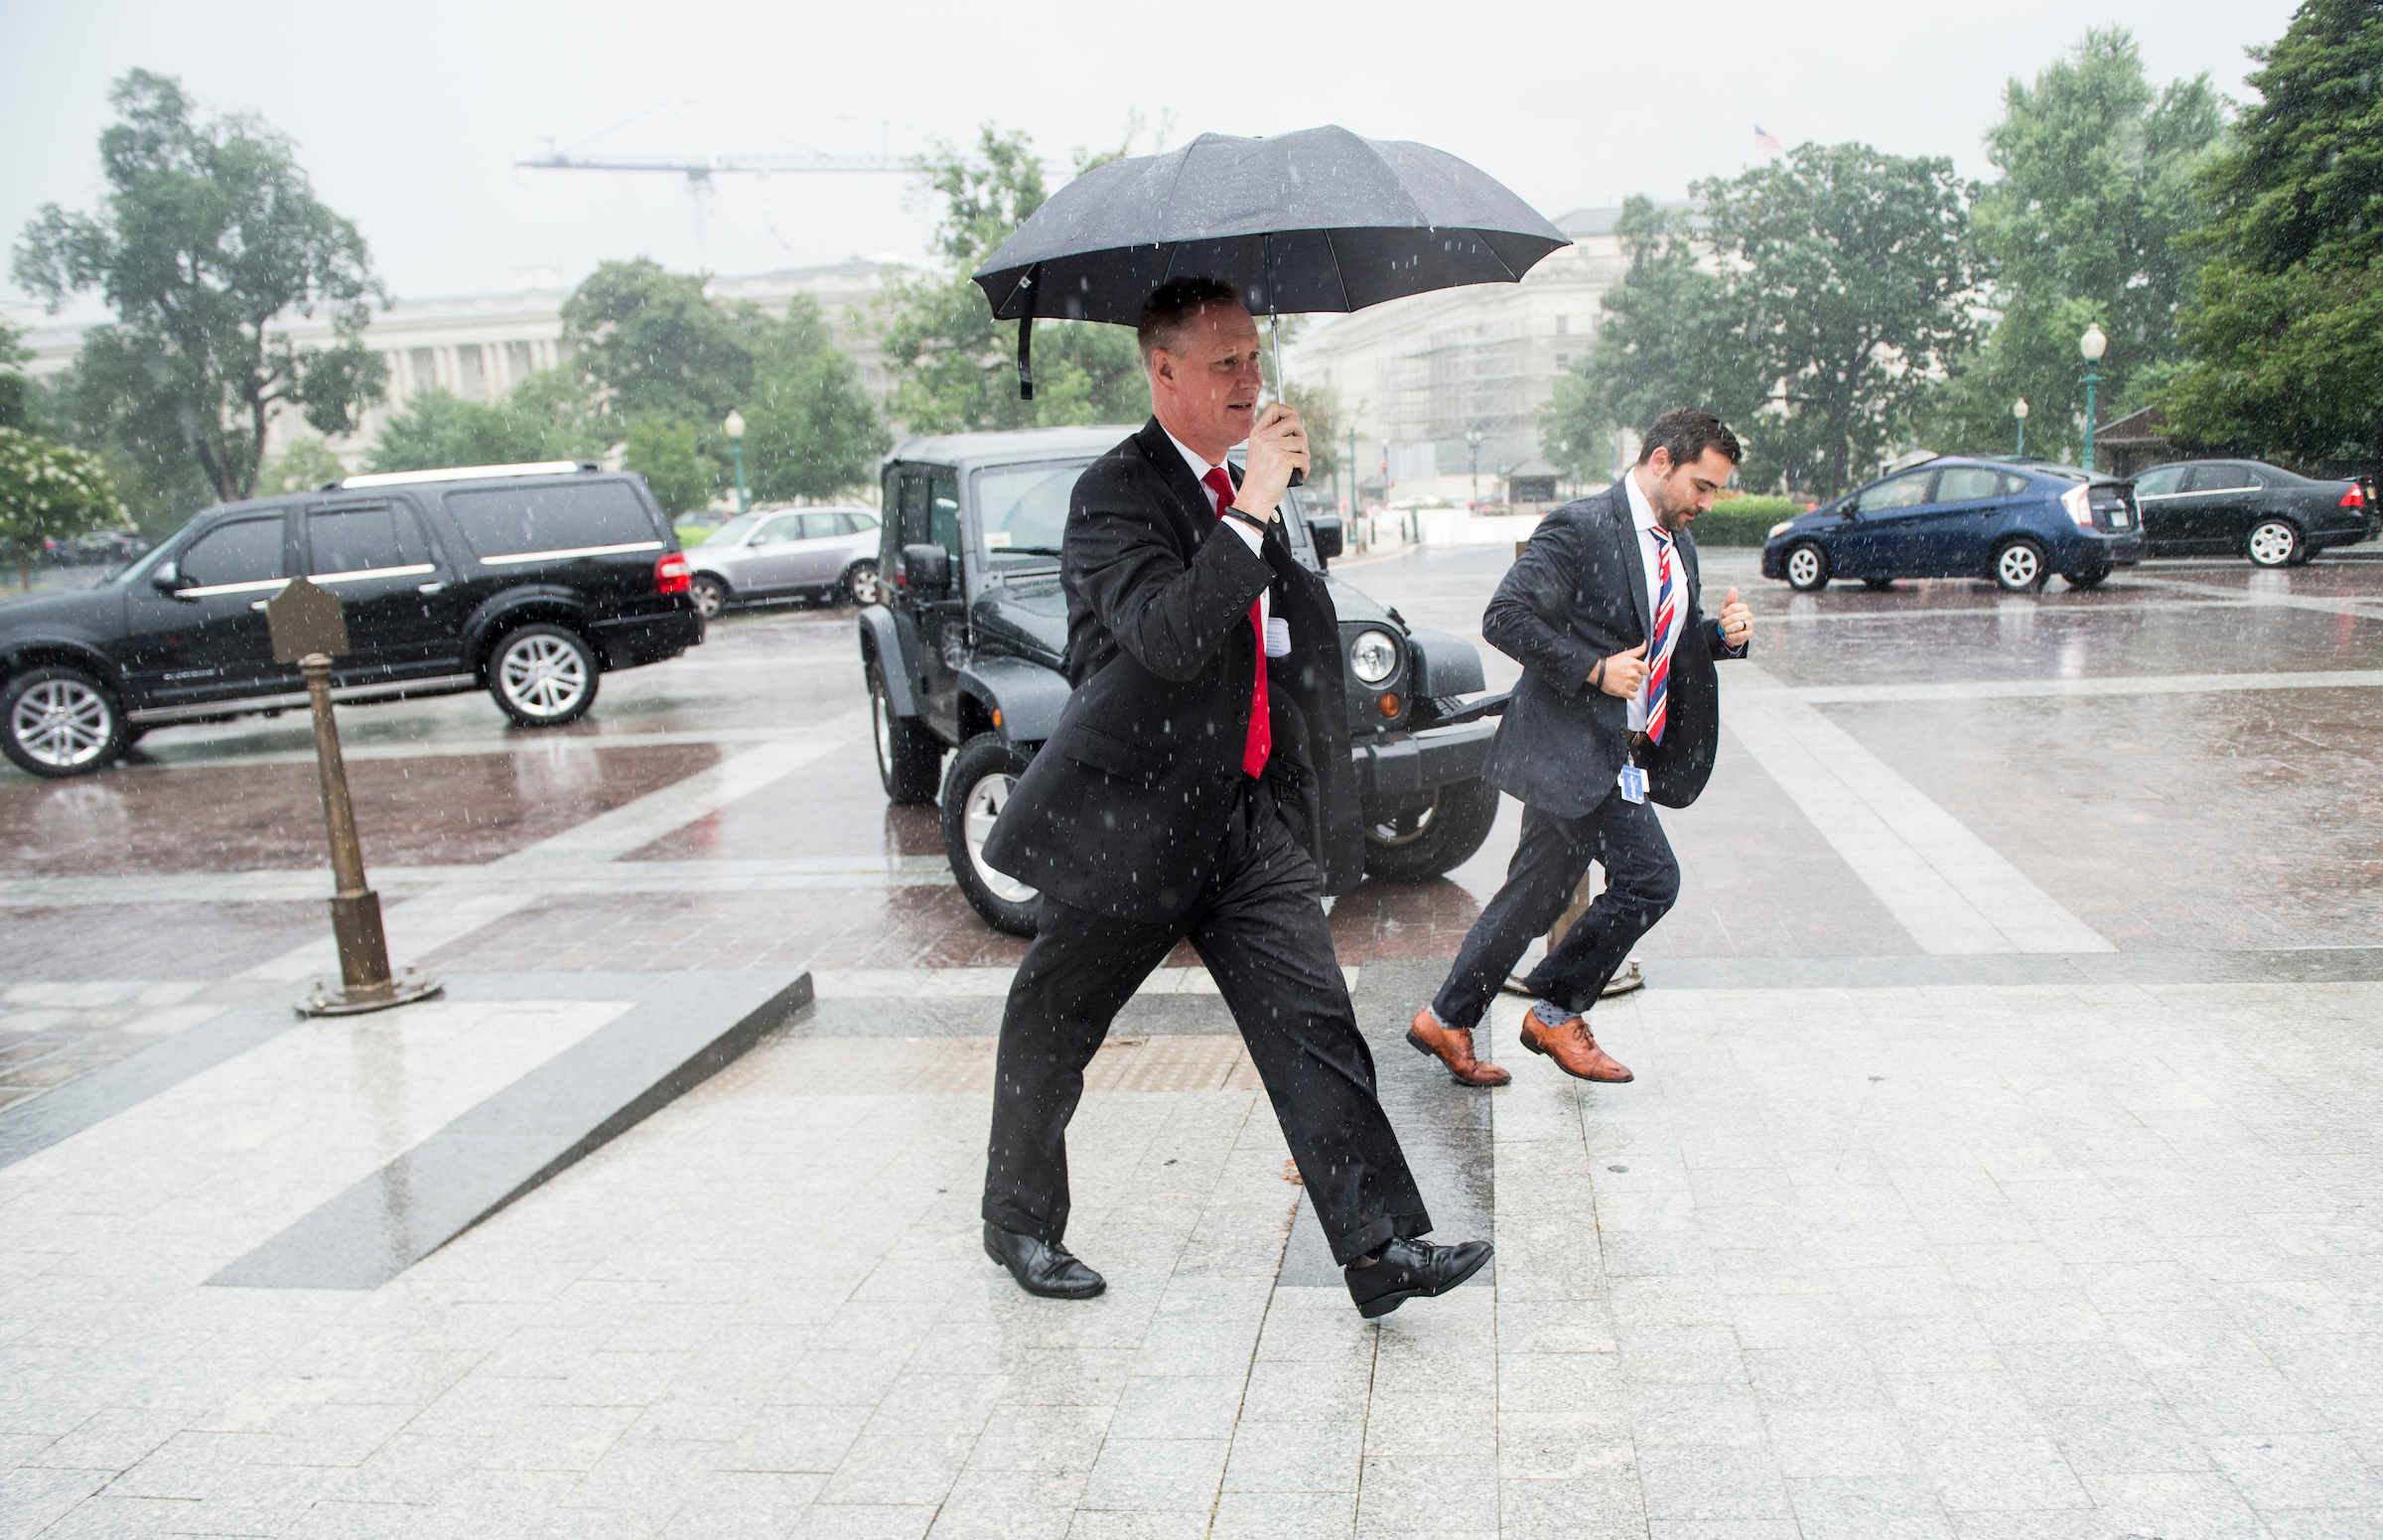 UNITED STATES - JULY 28: Rep. Steve Stivers, R-Ohio, walks up the House steps in the rain for the final votes before Congress leaves town for their summer recess on Friday, July 28, 2017. (Photo By Bill Clark/CQ Roll Call)